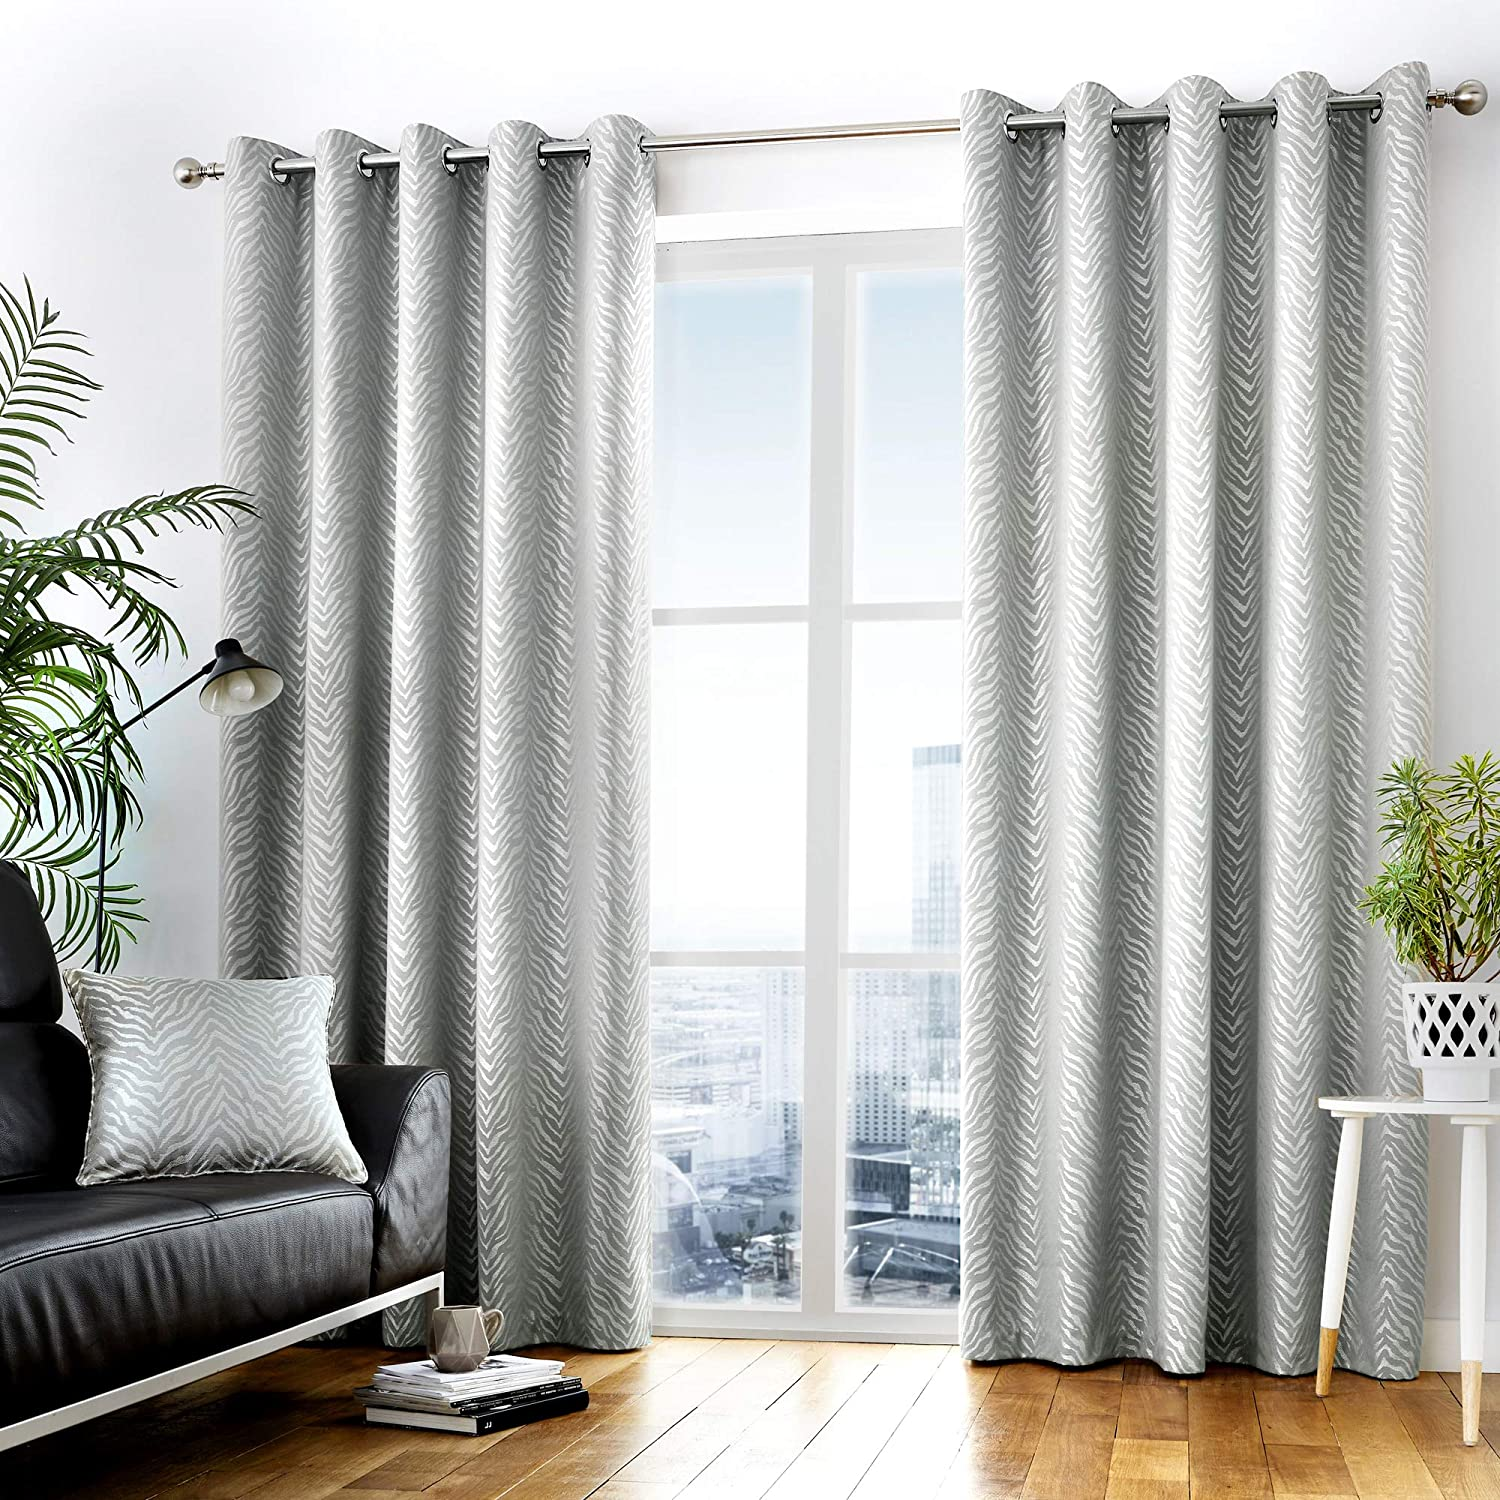 Curtina Africa Ready Made Lined Eyelet Curtains 66 Width X